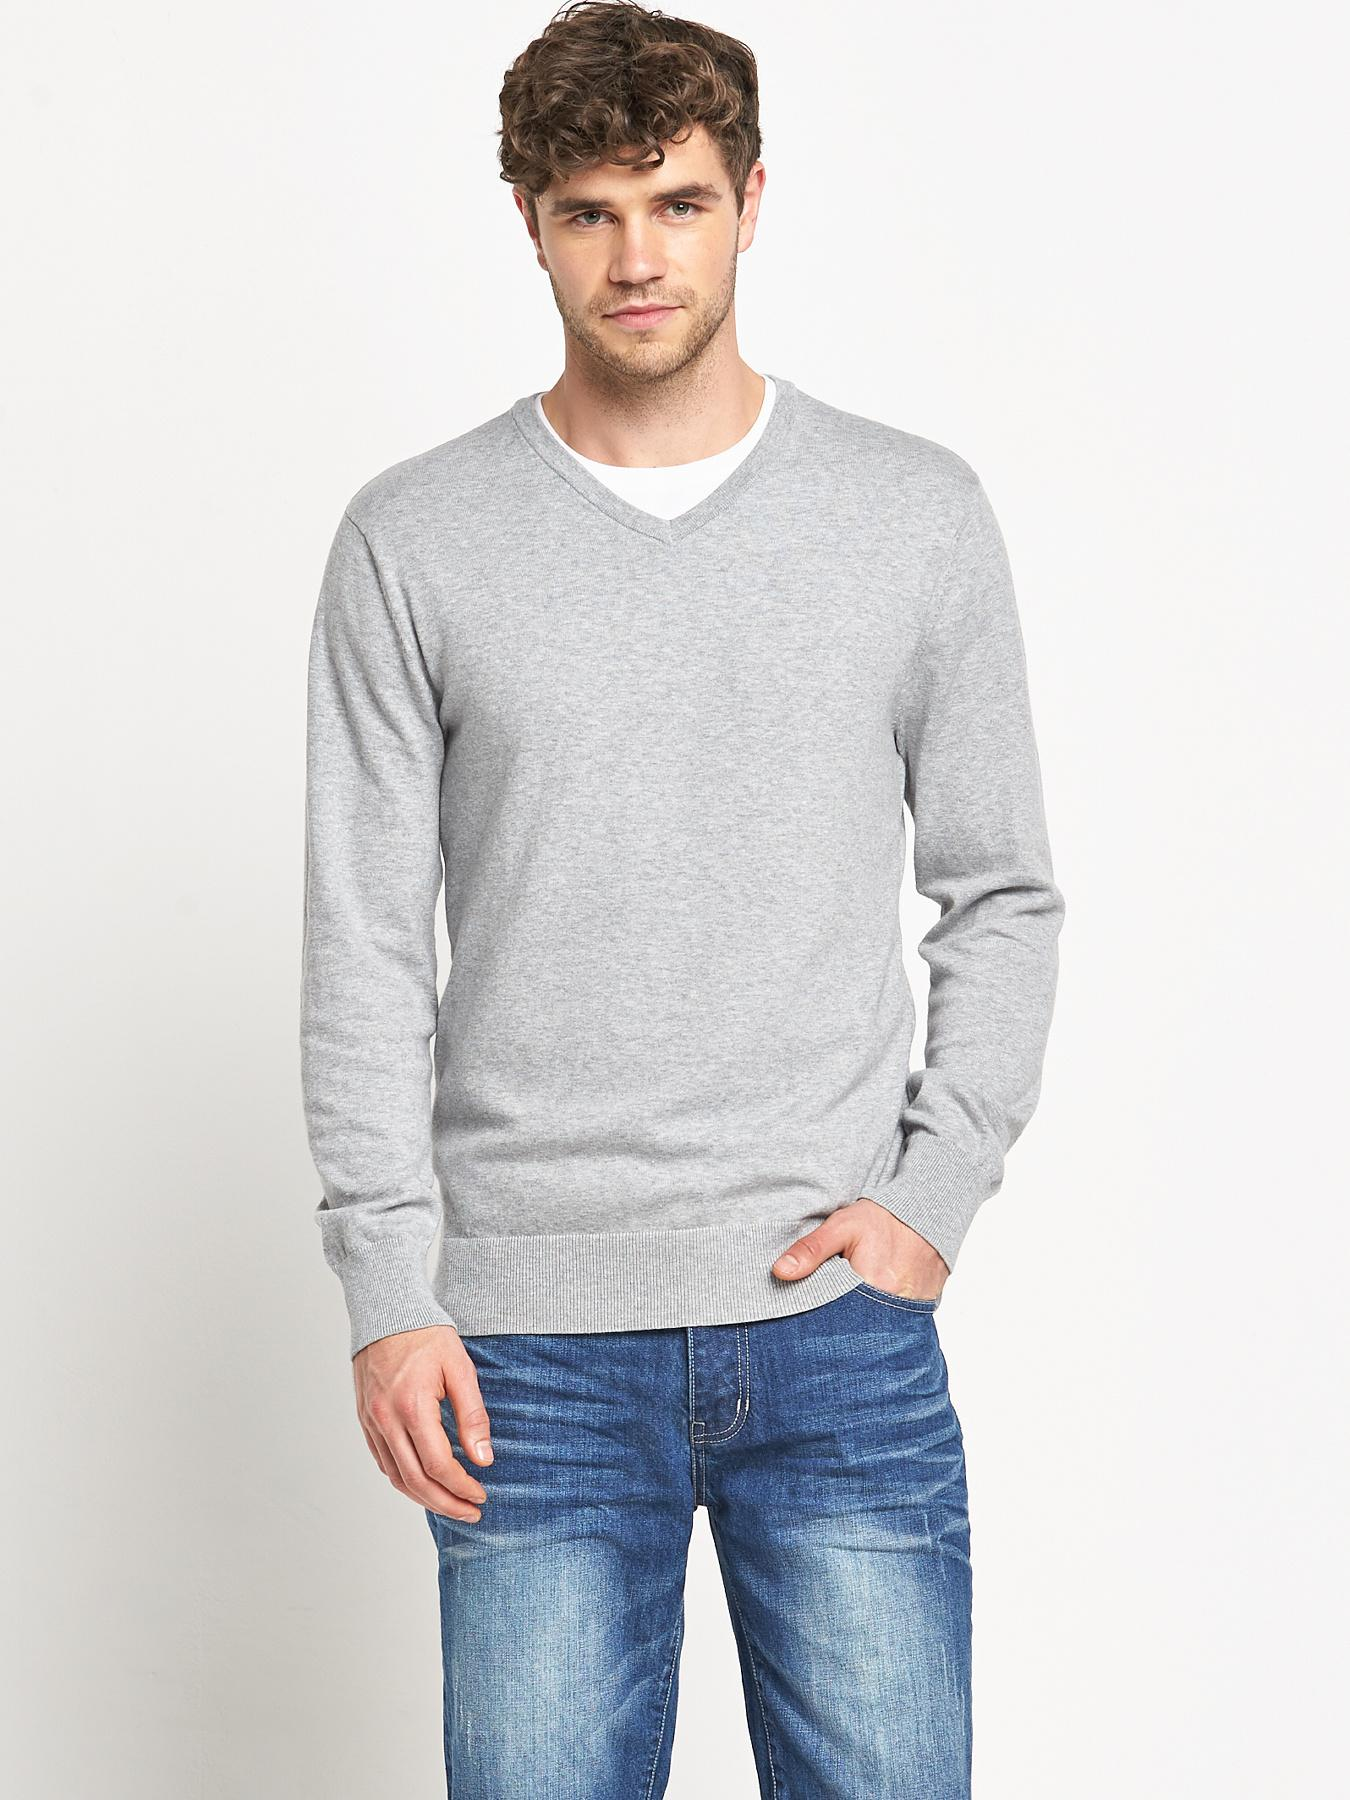 Goodsouls Mens V-Neck Jumper - Grey, Grey